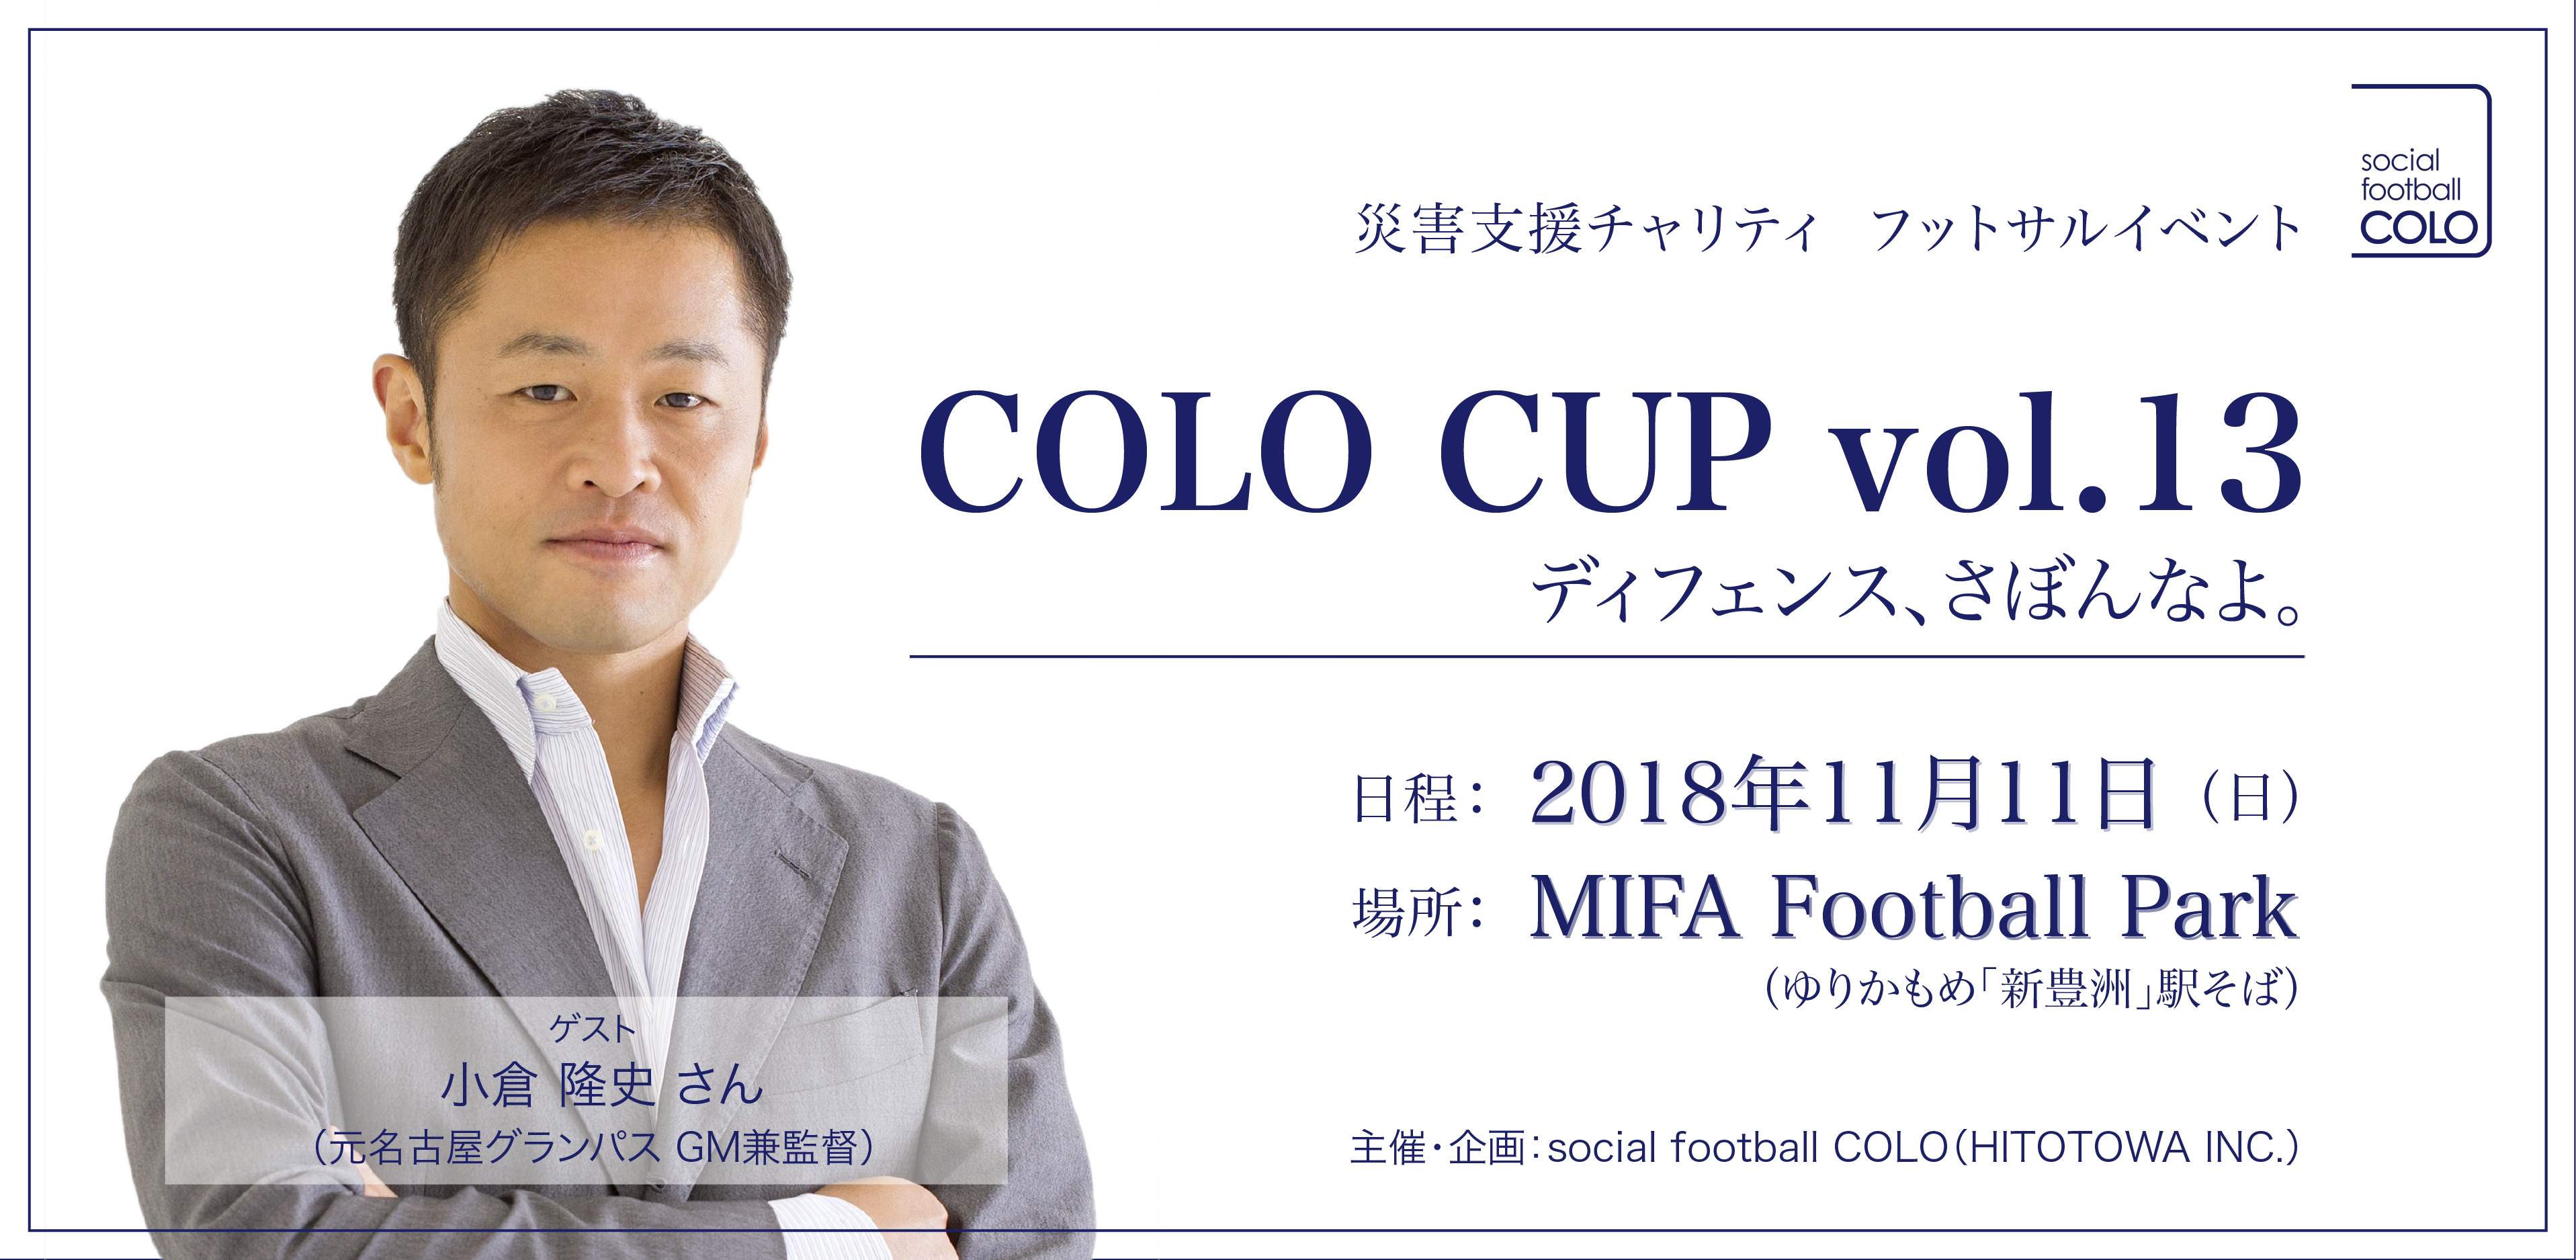 http://colojapan.asia/colo-cup/information/